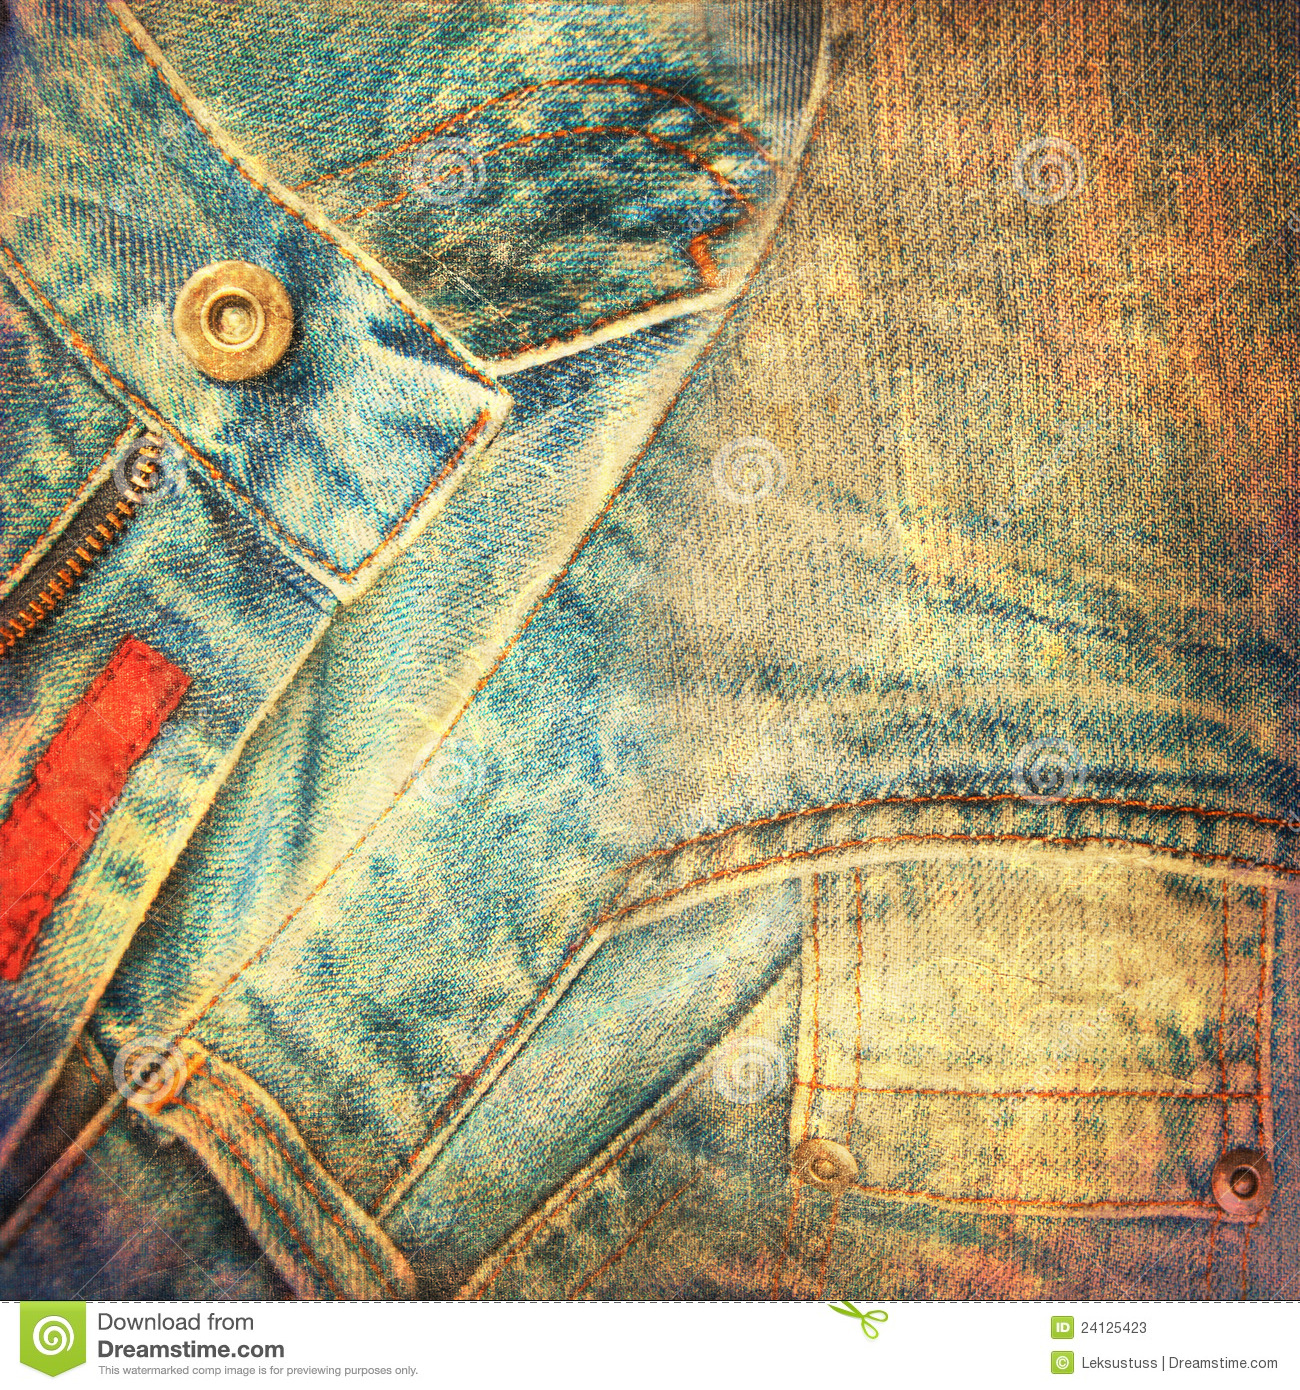 54226ca4d425 Abstract grunge jeans background stock illustration jpg 1300x1390 Abstract  denim background